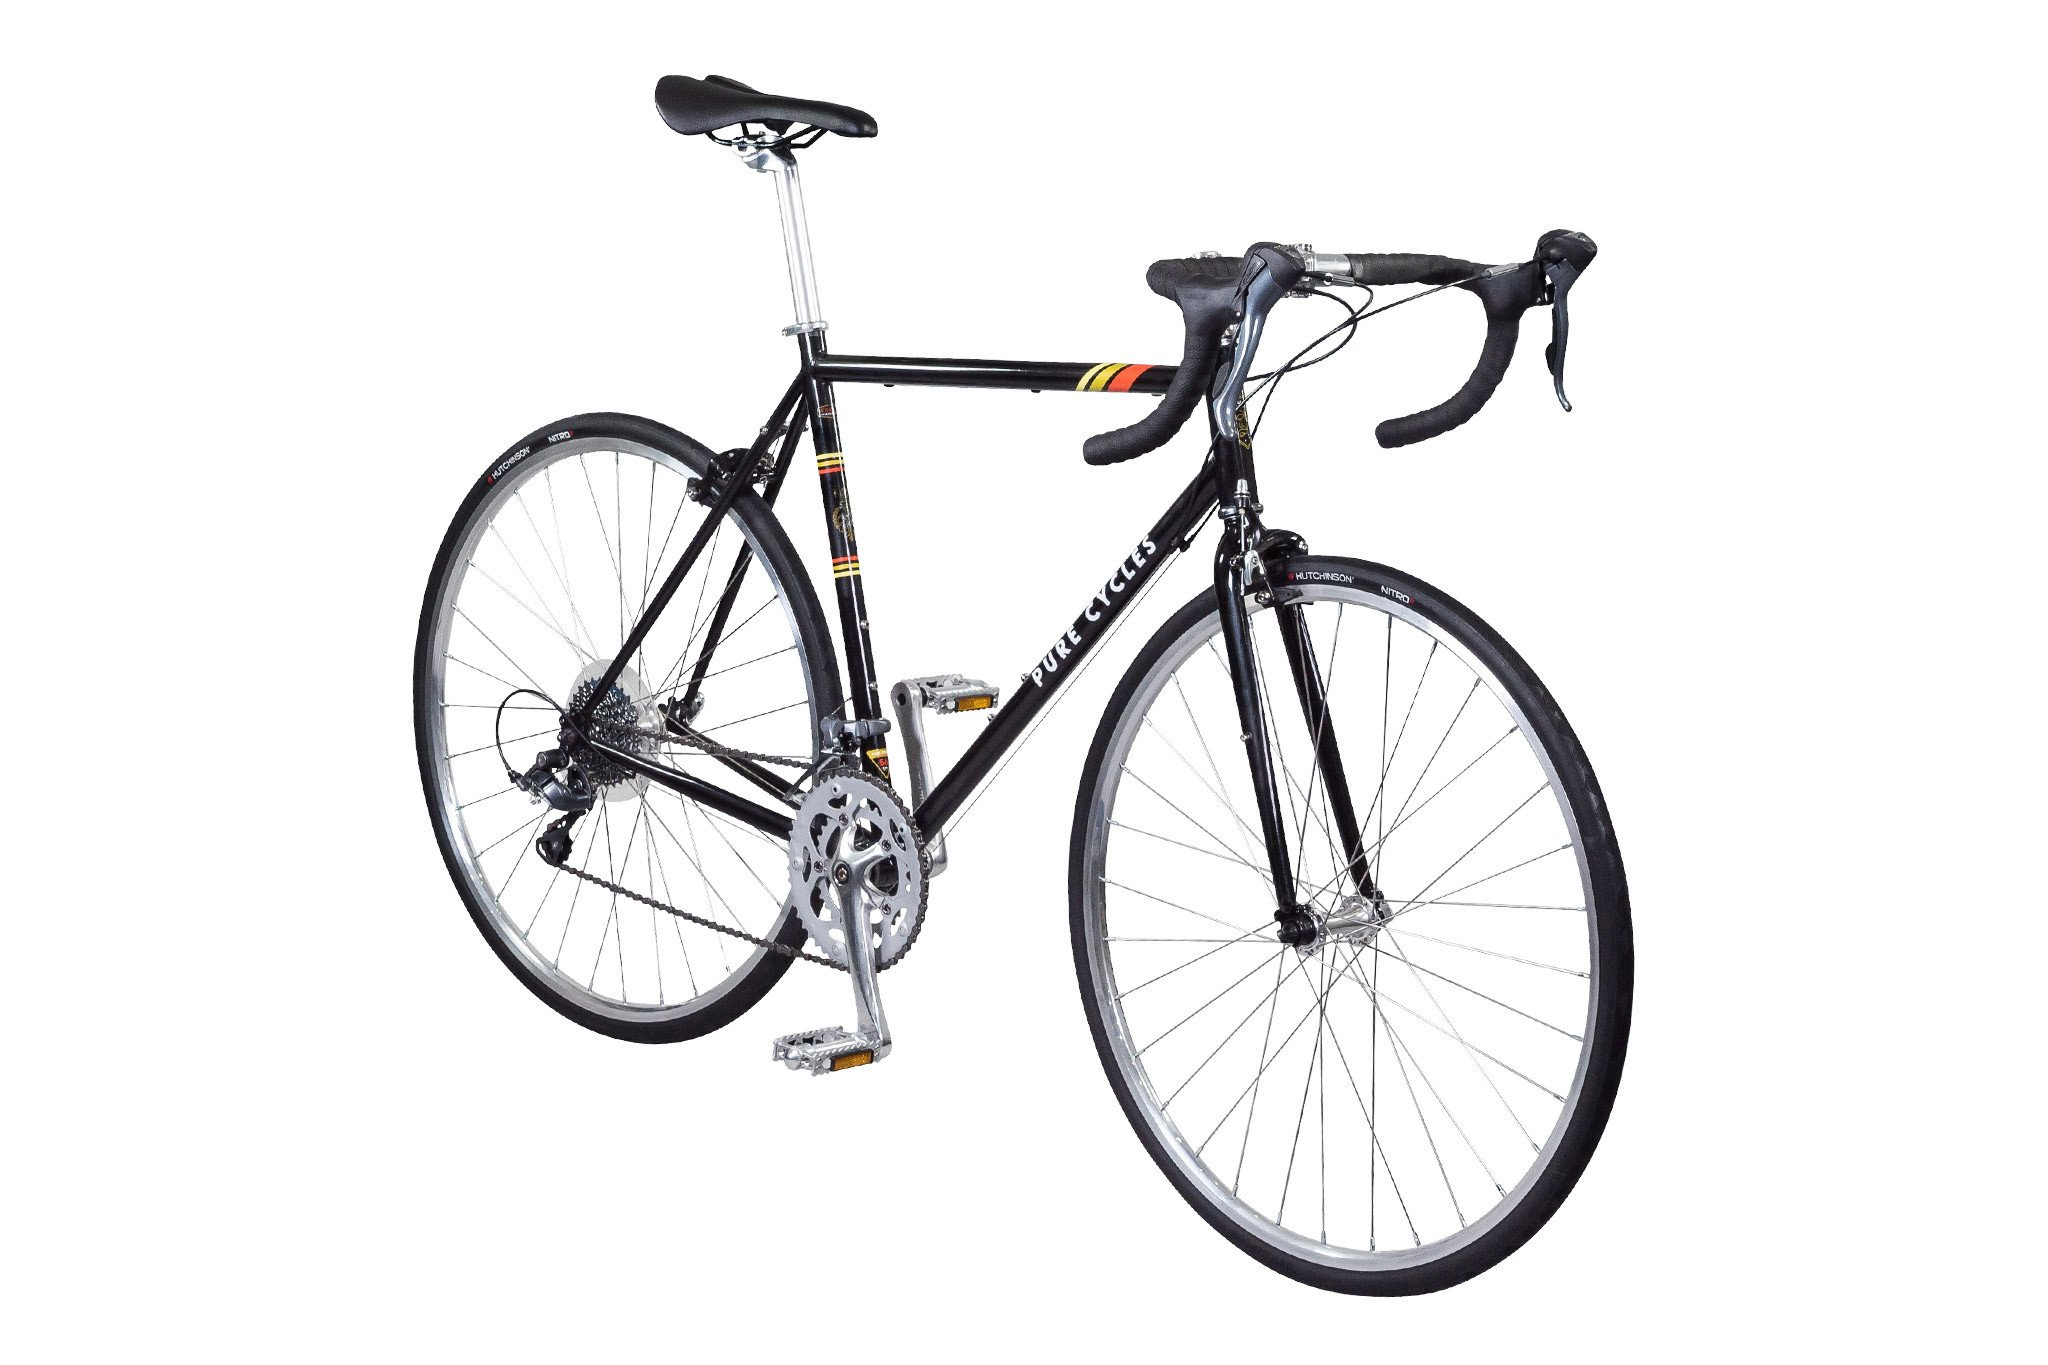 Pure Cycles Launches Road Bike Line With Two 500 Models